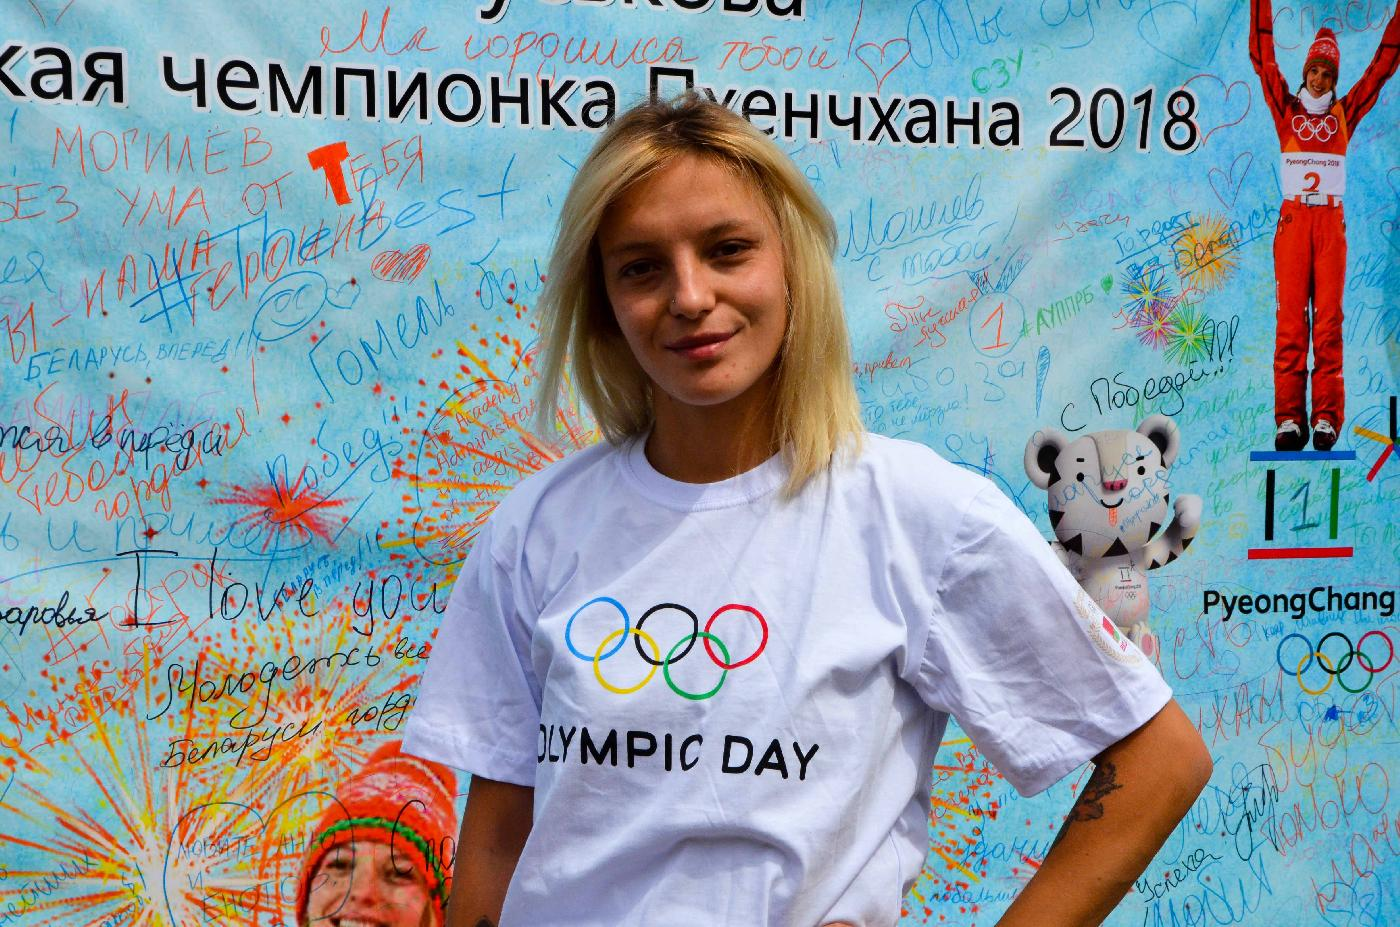 Olympic Day through eyes of Belarusian athletes